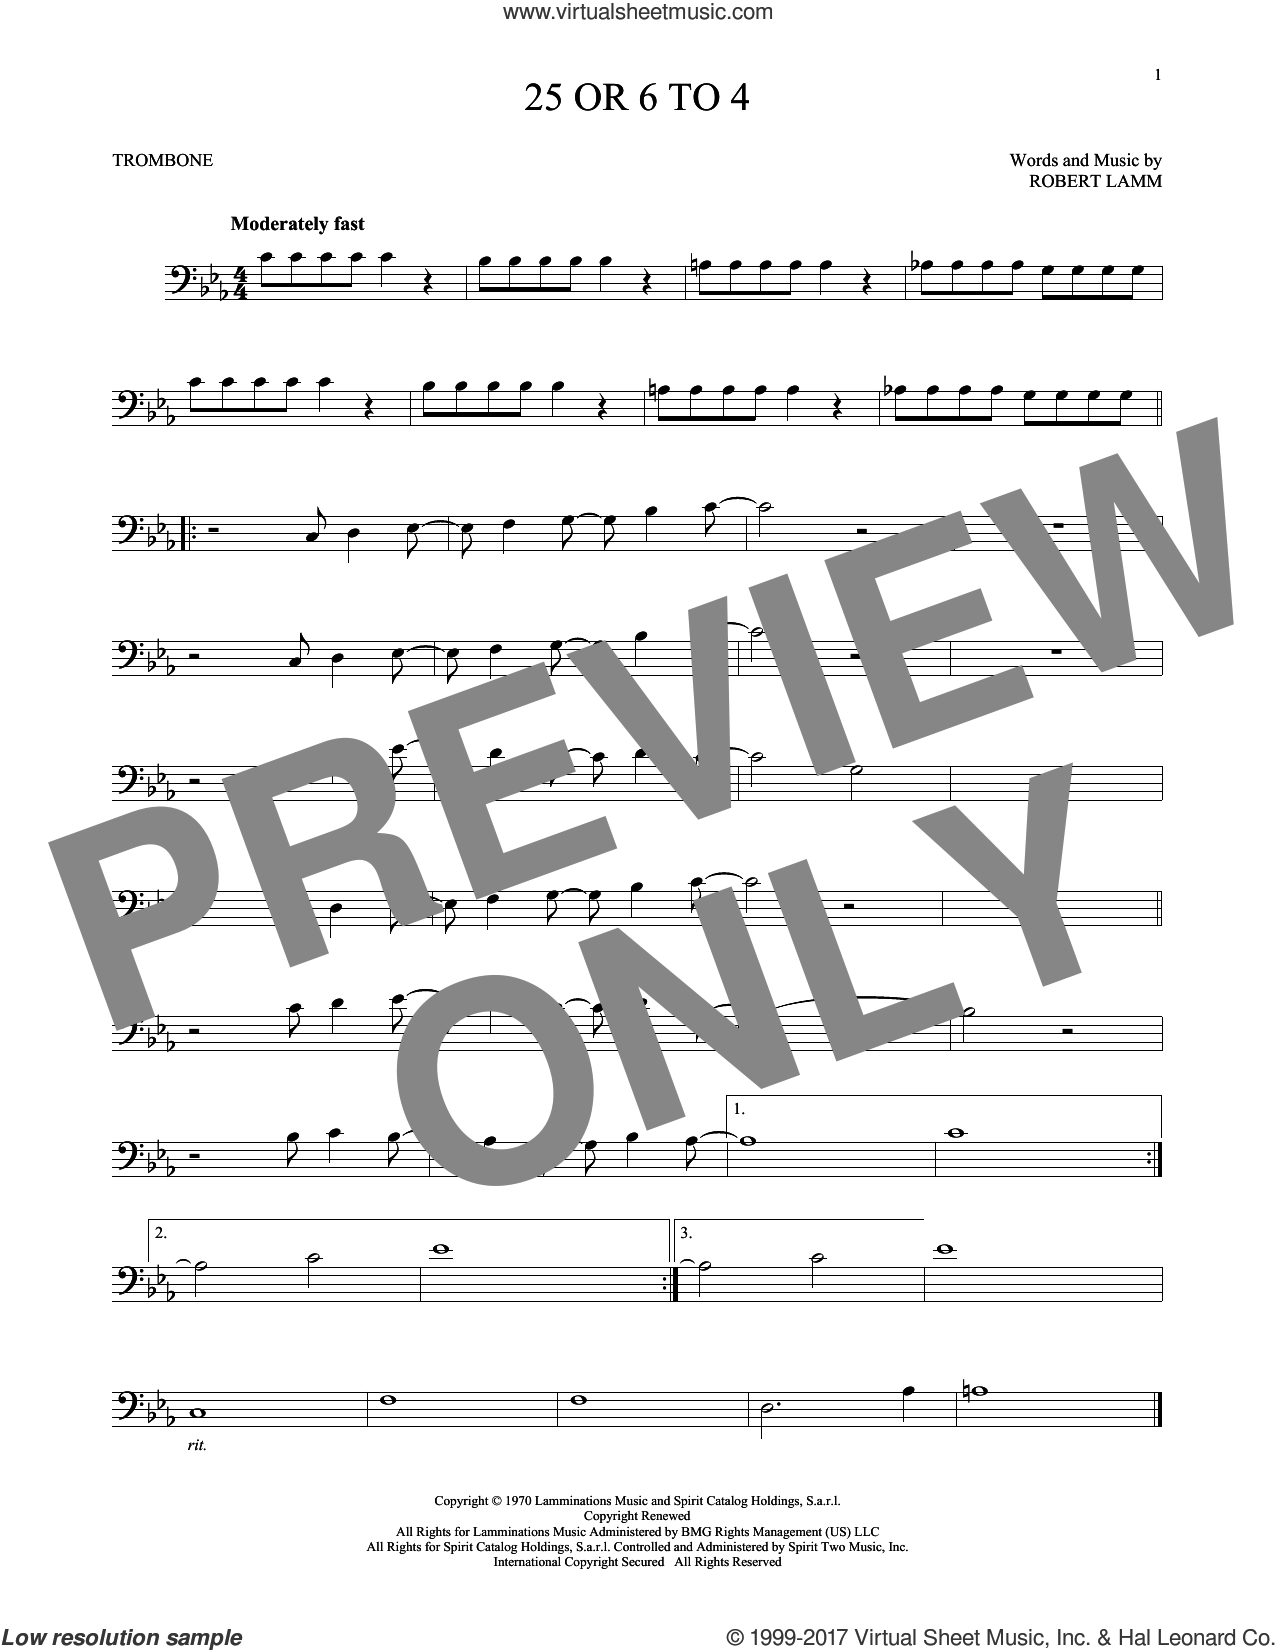 25 Or 6 To 4 sheet music for trombone solo by Chicago and Robert Lamm, intermediate